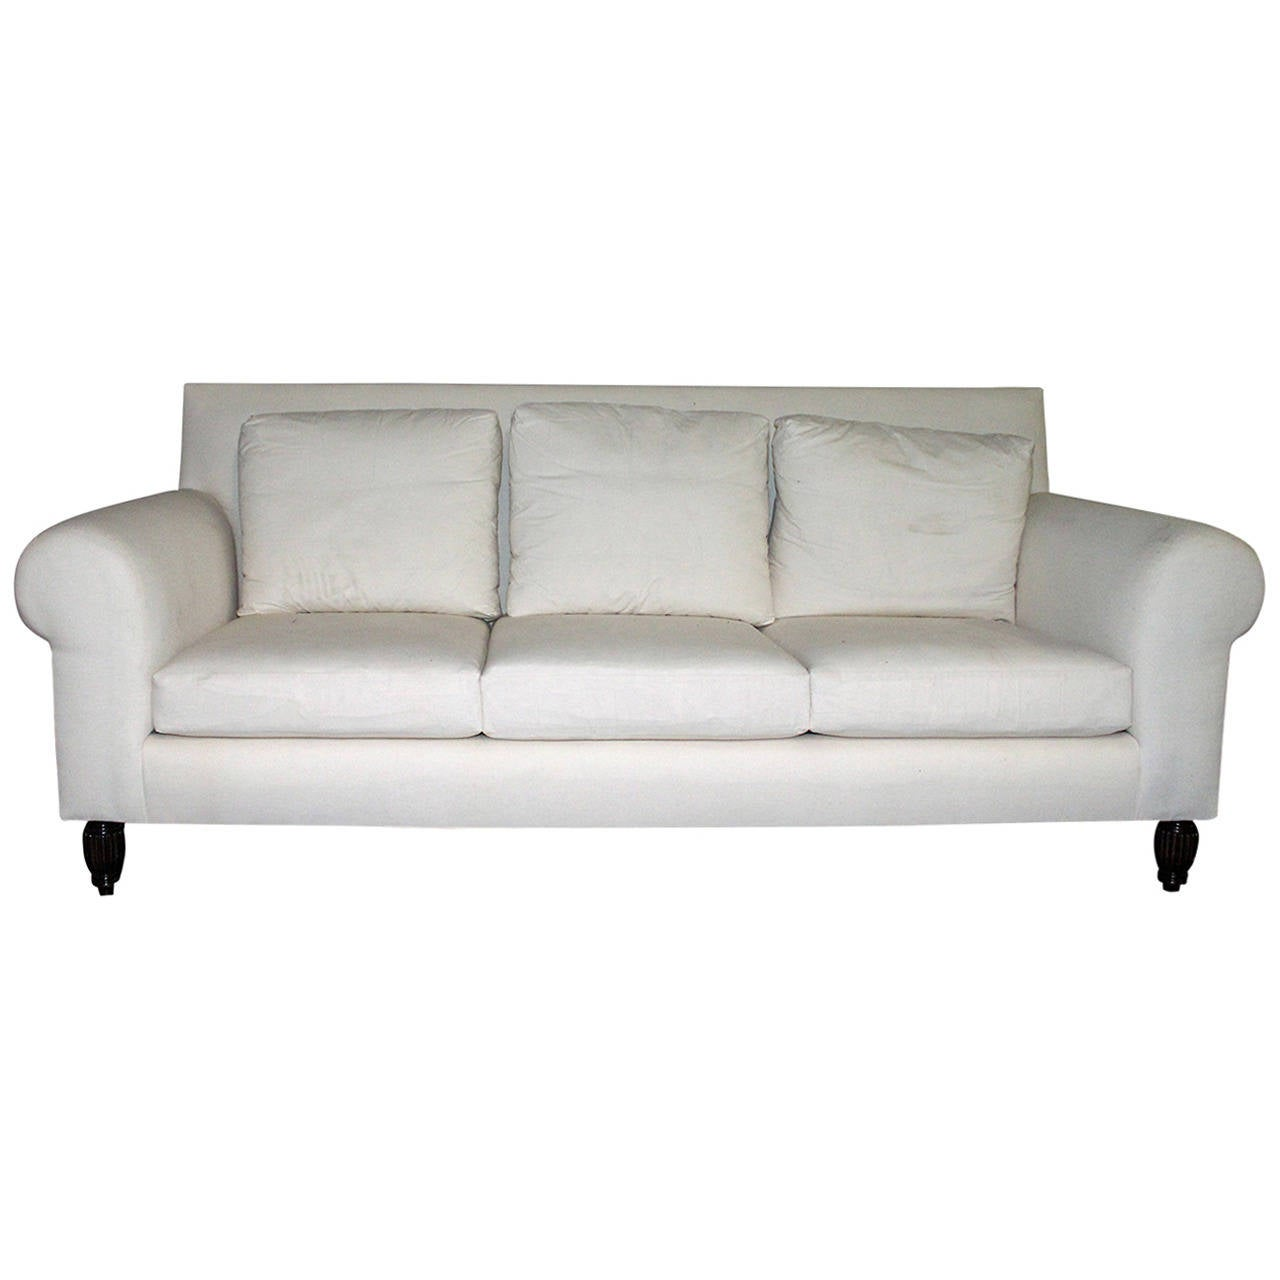 Large comfortable sectional sofas wholesale comfortable for Big comfortable sofas